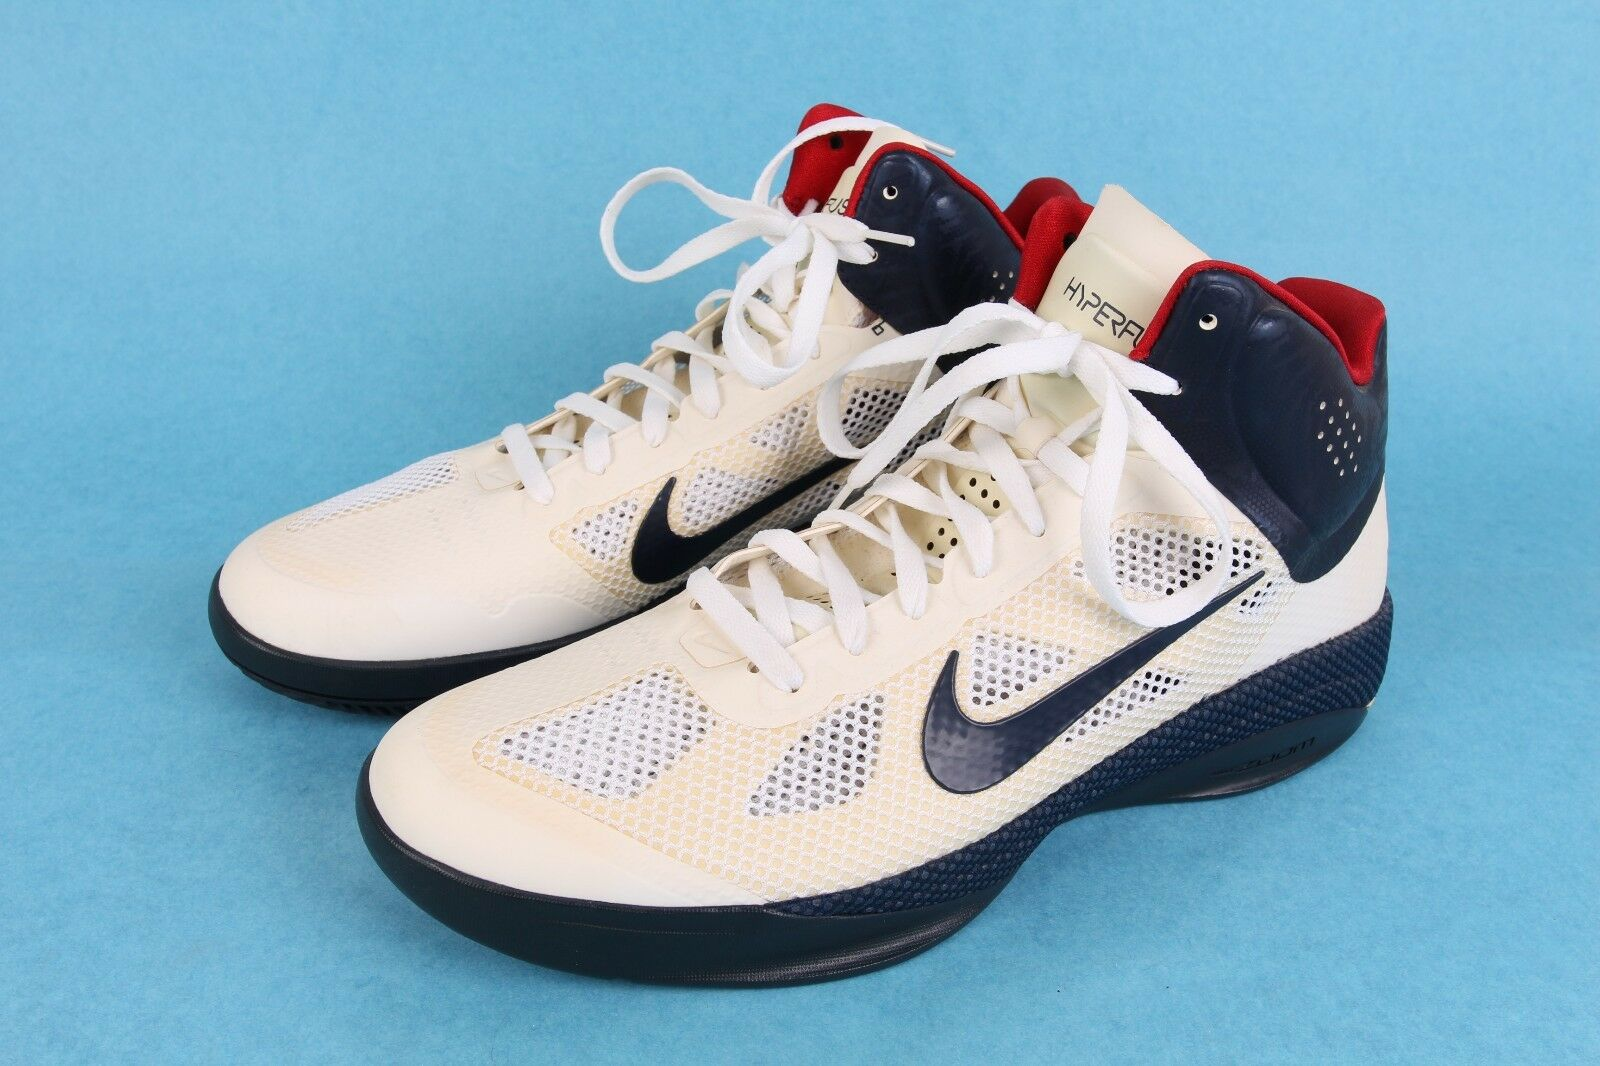 2010 NIKE ZOOM HPERFUSE OLYMPIC gold MEDAL MENS BASKETBALL SHOES UNWORN SZ 14